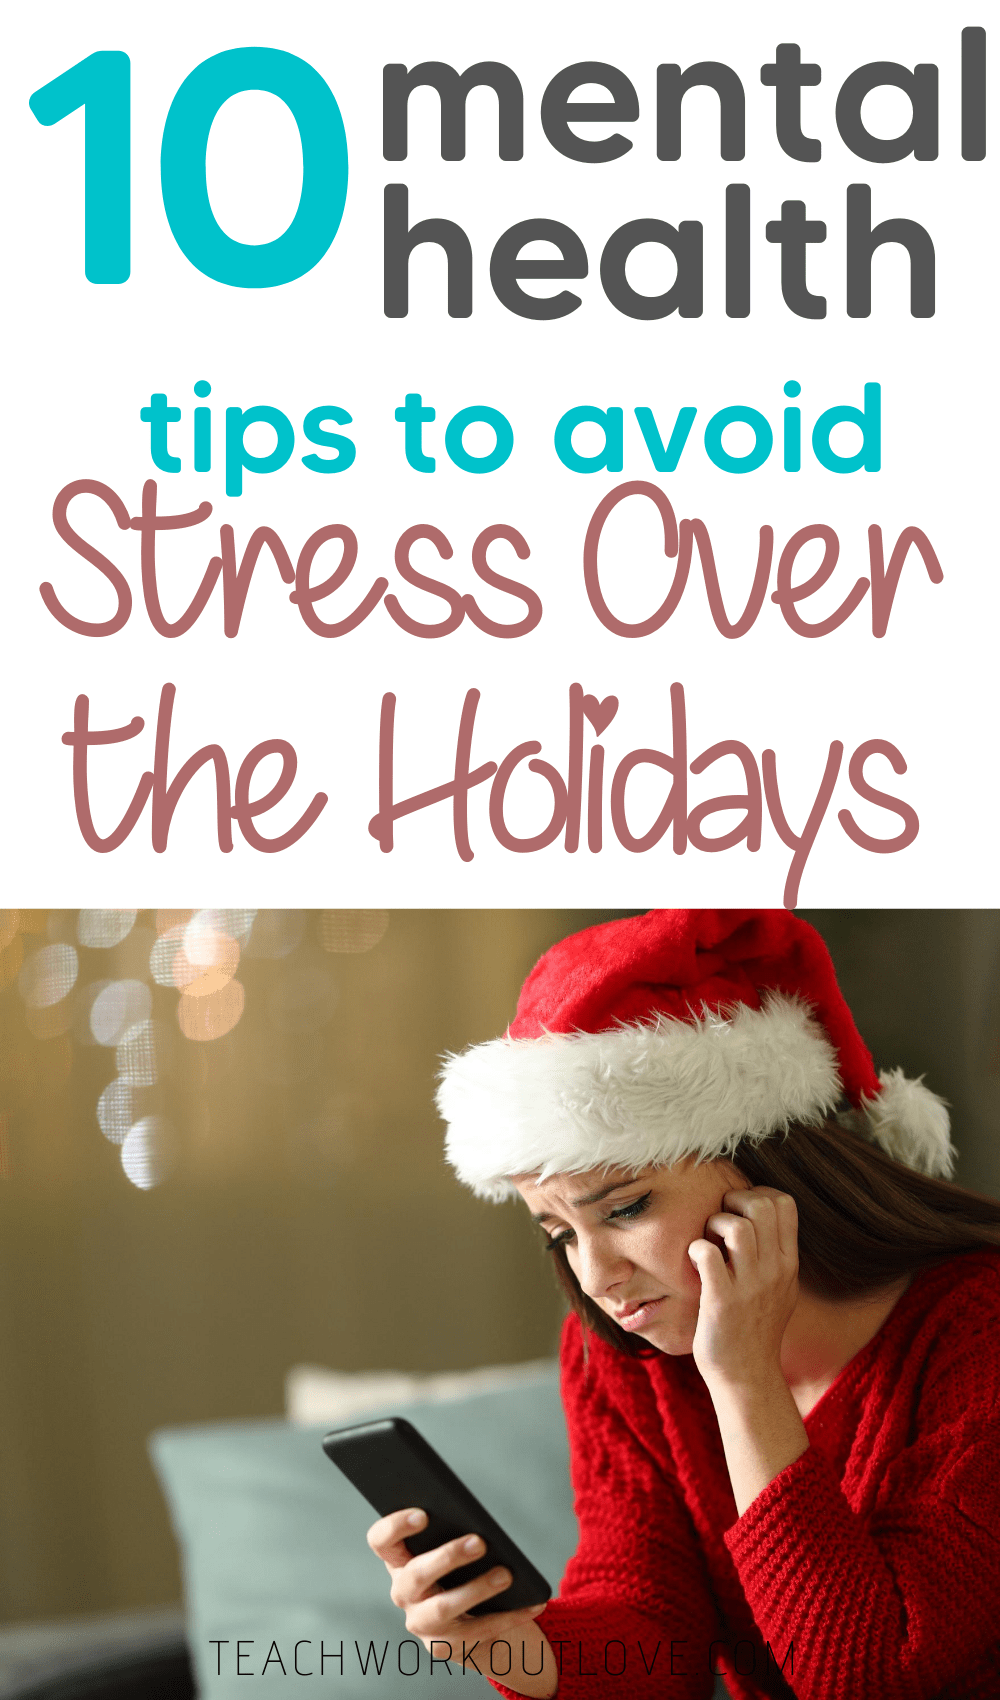 The holiday season is such a jolly and wonderful time and also very stressful. It's time to plan how to avoid getting stressed over the holidays!